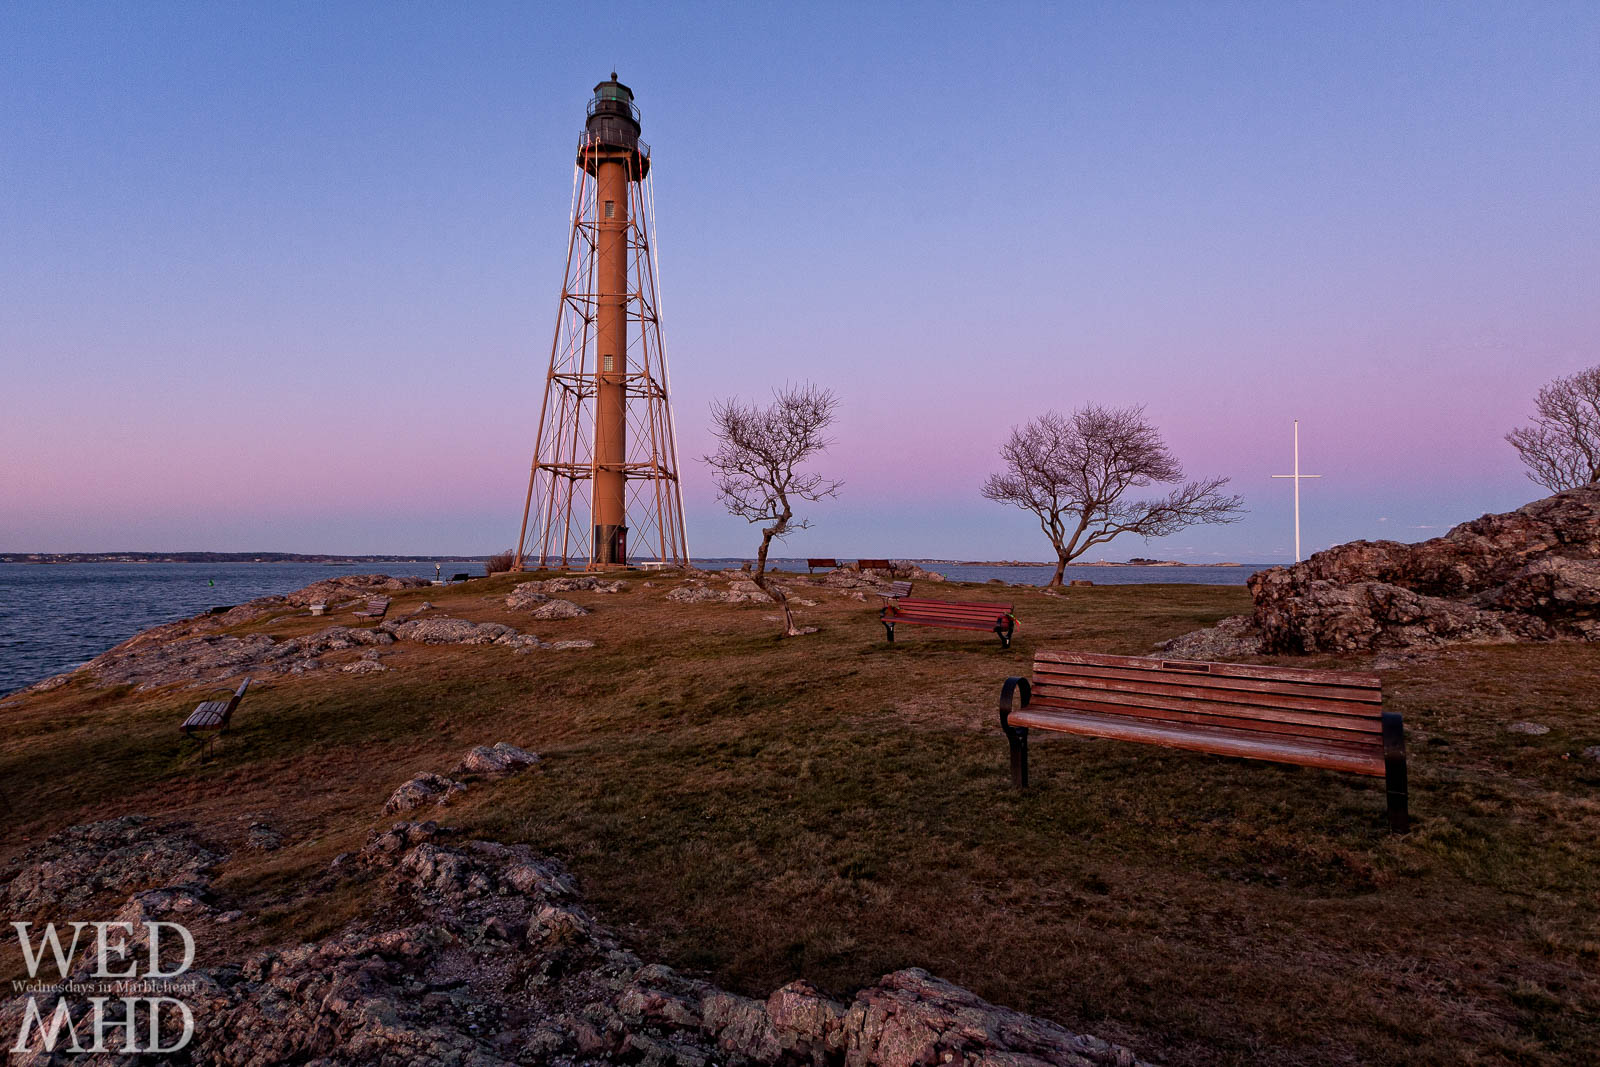 A string of lights on Marblehead Light ushers in the Holidays. Each year the Rotary Club hangs lights from atop the lighthouse to add a festive touch to Chandler Hovey Park.